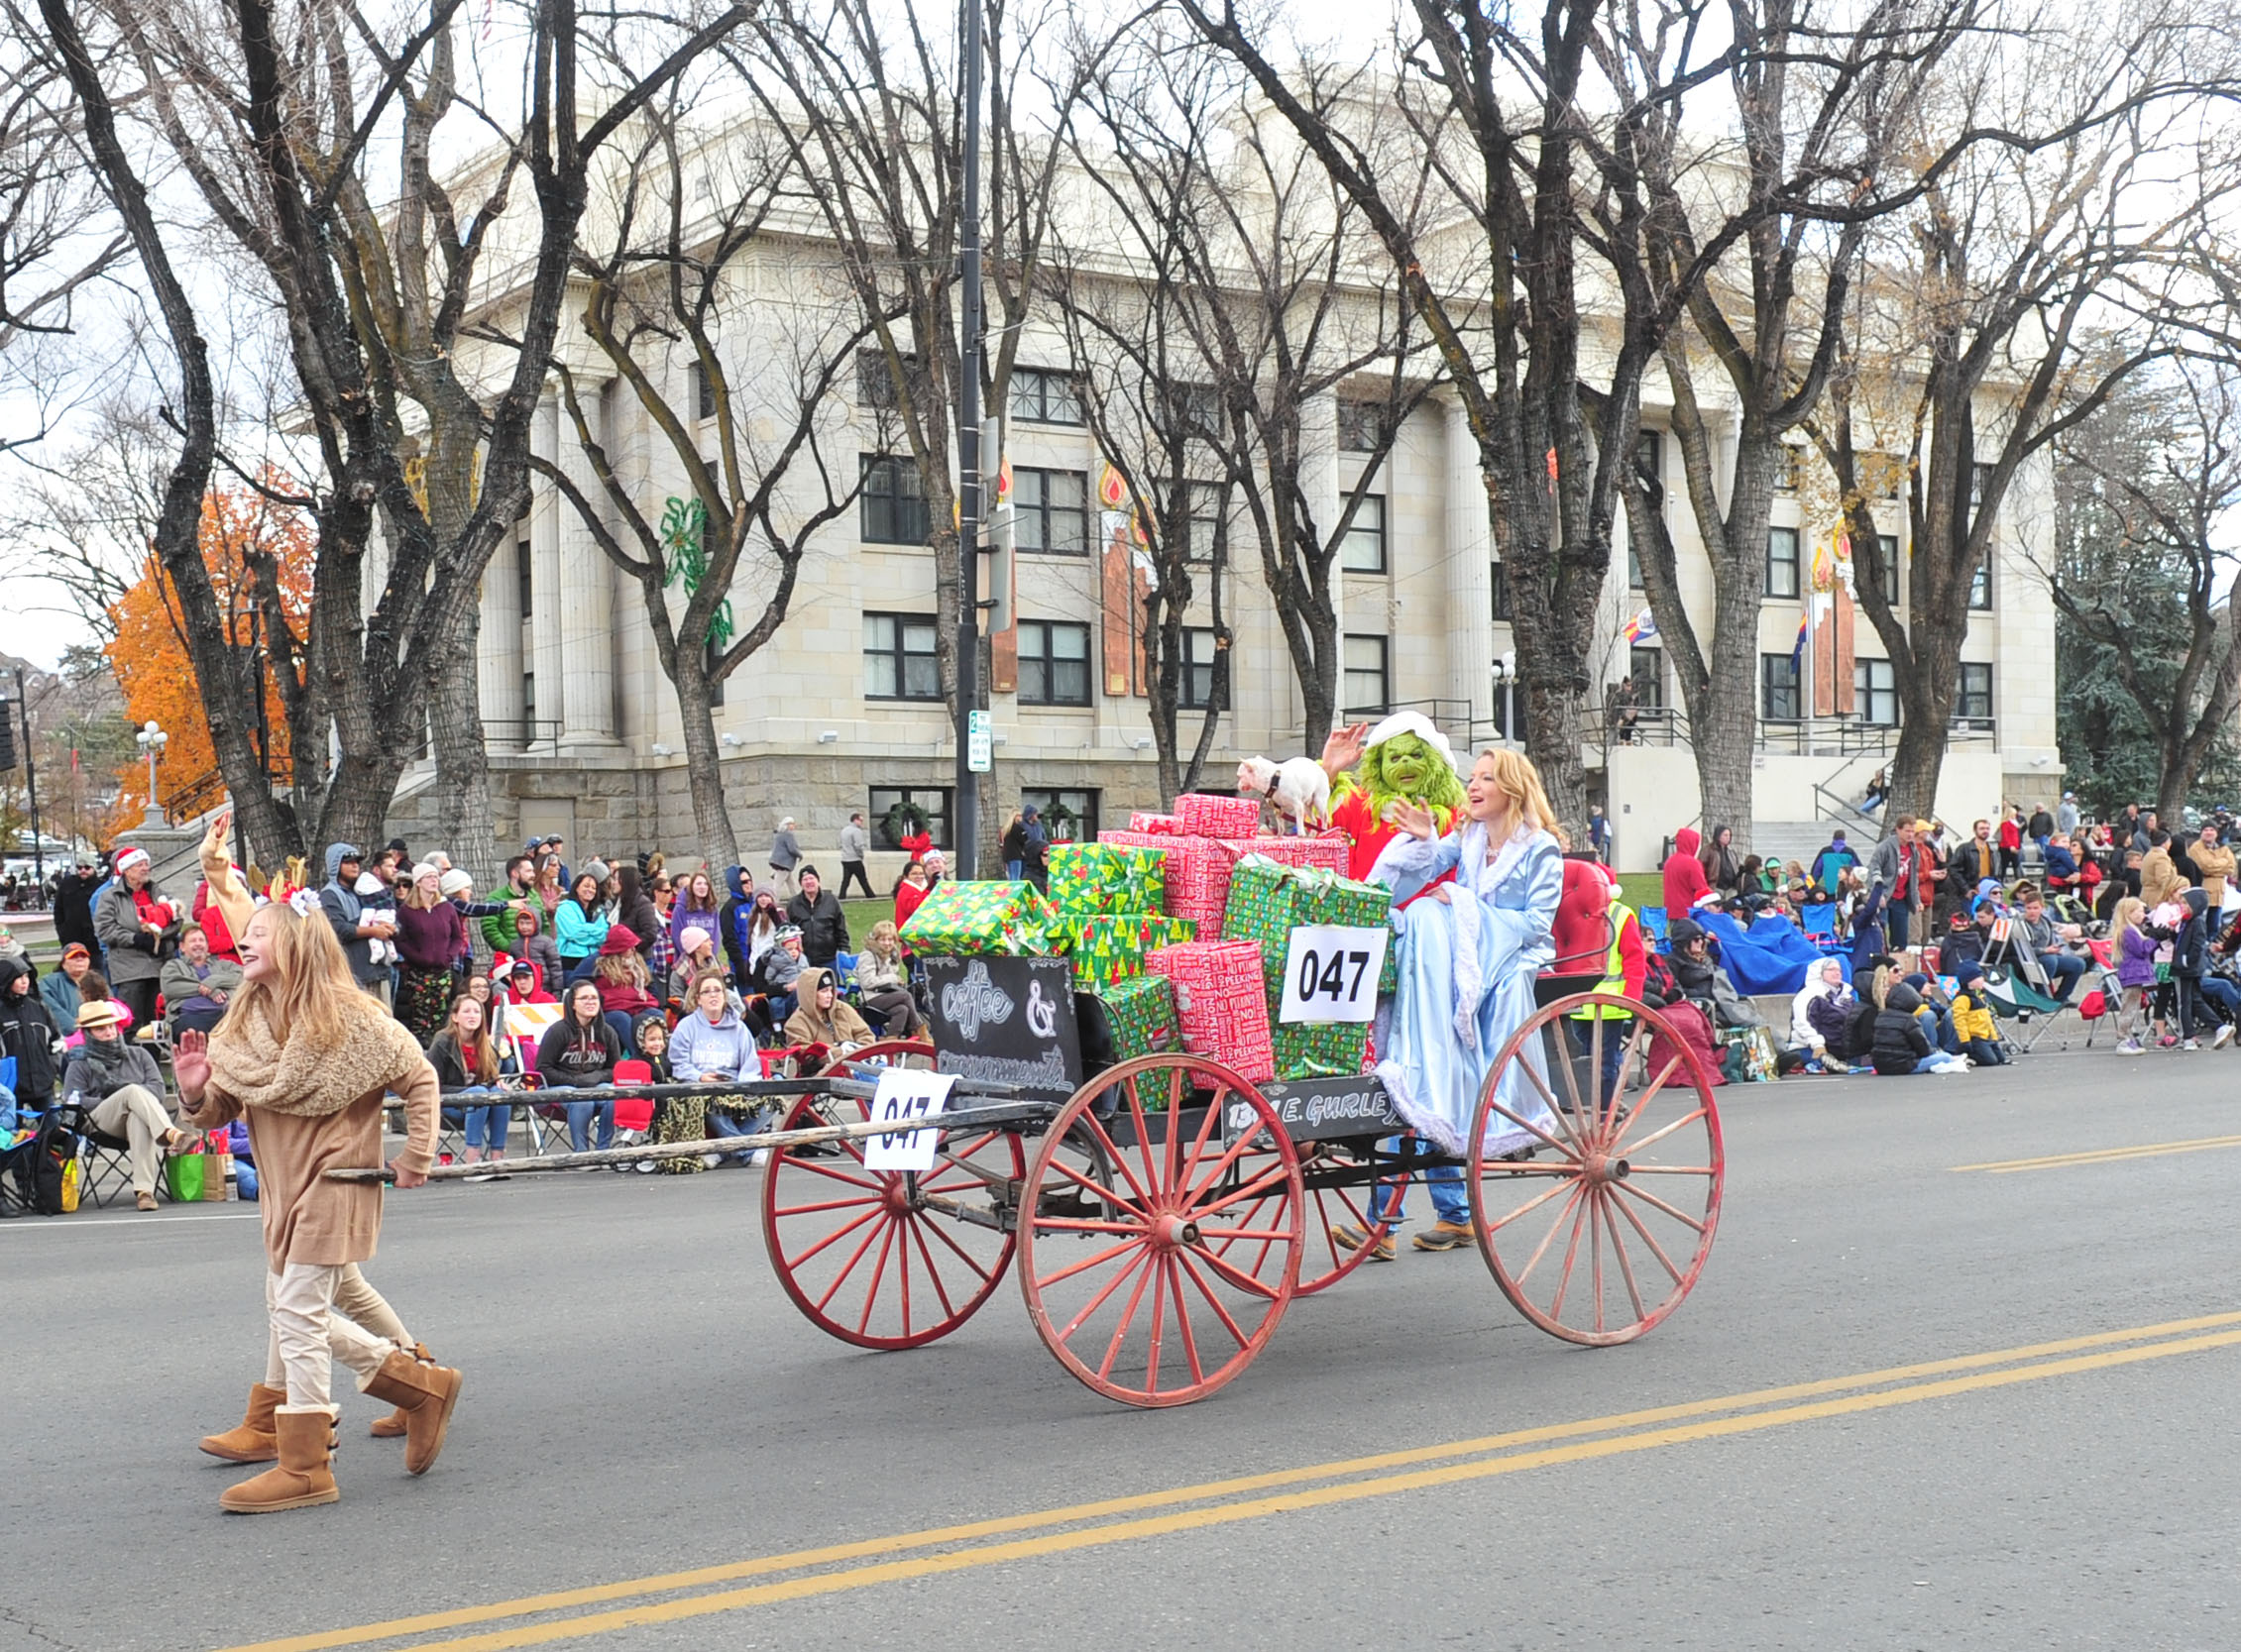 Prescott Christmas Parade 2020 Route Prescott Christmas parade, courthouse lighting, Dec. 7 | The Daily